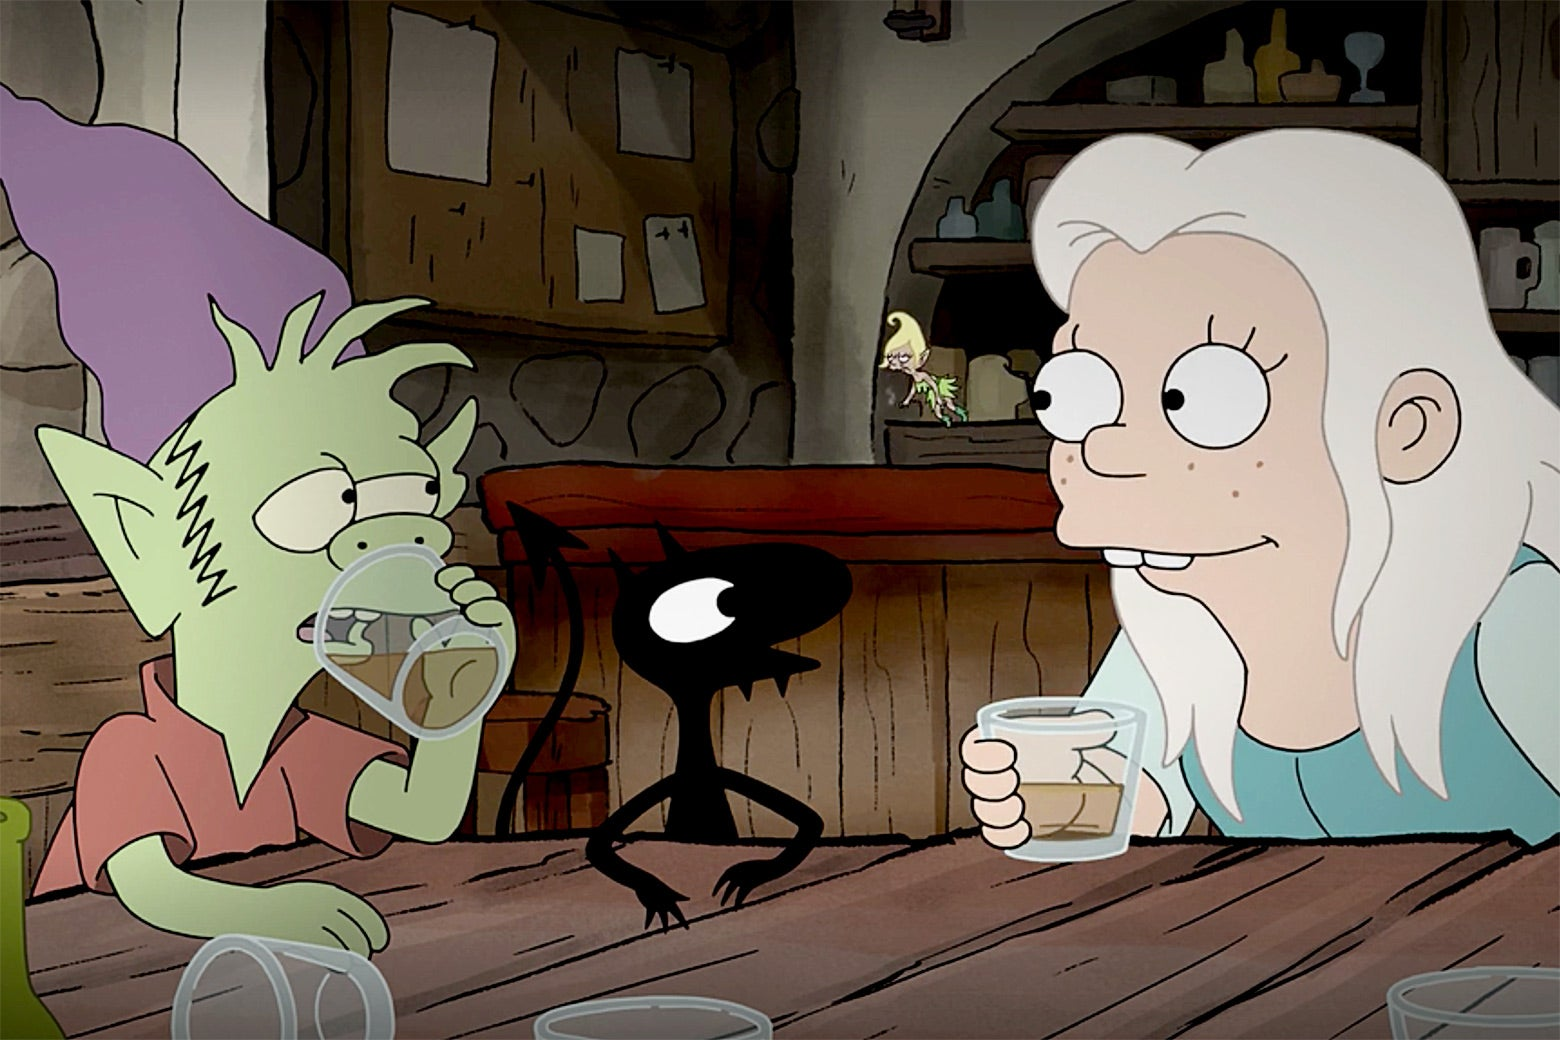 In a scene from Matt Groening's Disenchantment, Bean (Abbi Jacobson) shares a drink with her companions Elfo (Nat Faxon) and Luci (Eric André).